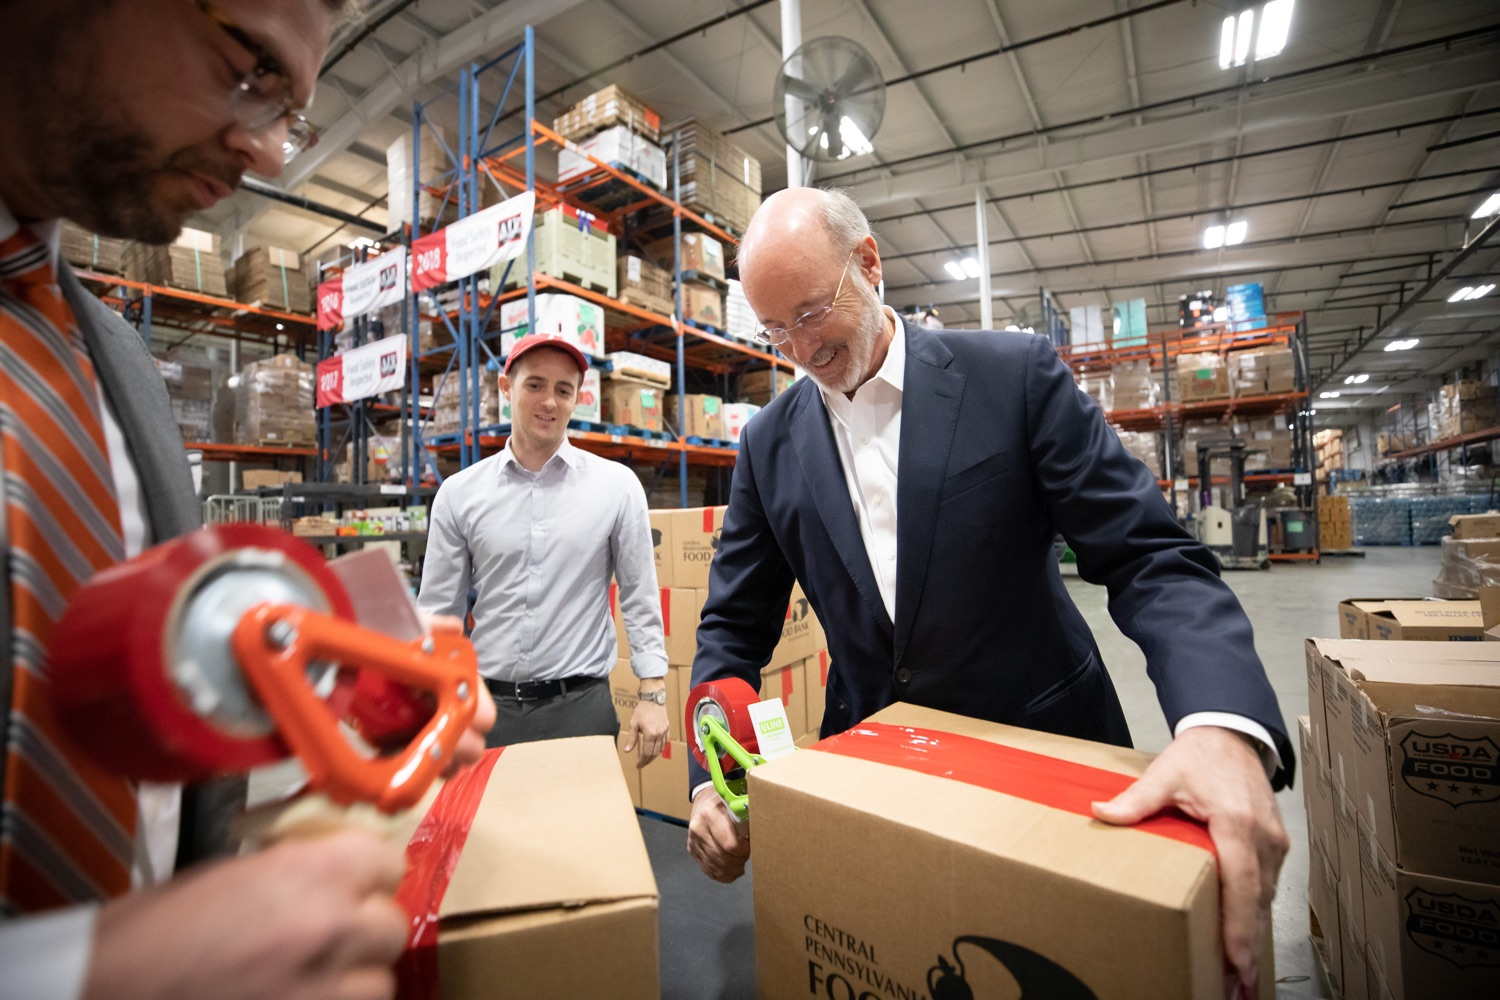 "<a href=""https://filesource.wostreaming.net/commonwealthofpa/photo/17632_gov_foodbank_volunteering_dz_015.jpg"" target=""_blank"">⇣ Download Photo<br></a>Governor Tom Wolf loading boxes of food at the Central Pennsylvania Food Bank.  The governor and first lady visit the Central Pennsylvania Food Bank in Harrisburg to participate in a volunteer project, packing boxes of food for veterans and their families. Ahead of Thanksgiving and the holiday season, Governor Tom Wolf and First Lady Frances Wolf are reminding Pennsylvanians of the importance of helping each other. Harrisburg, PA  Tuesday November 26, 2019"